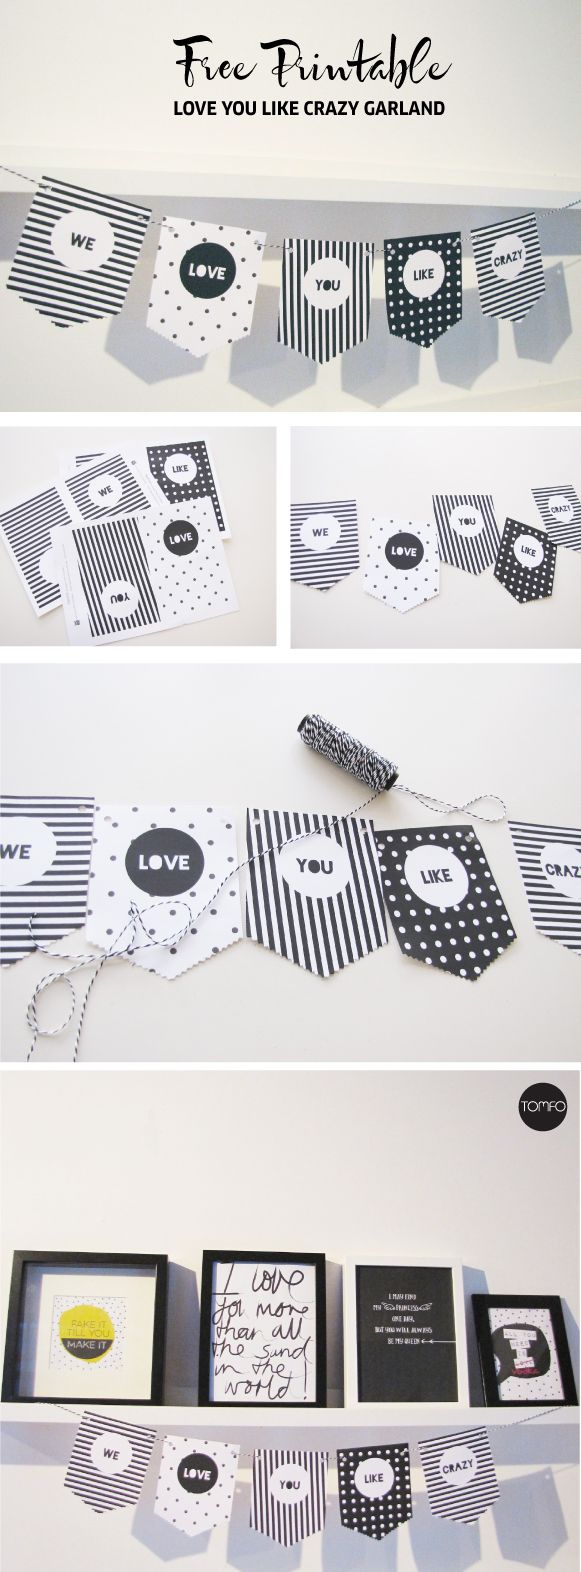 We love you like crazy....Free printable garland... so easy to make. Love this idea for a party... or to surprise someone you love.